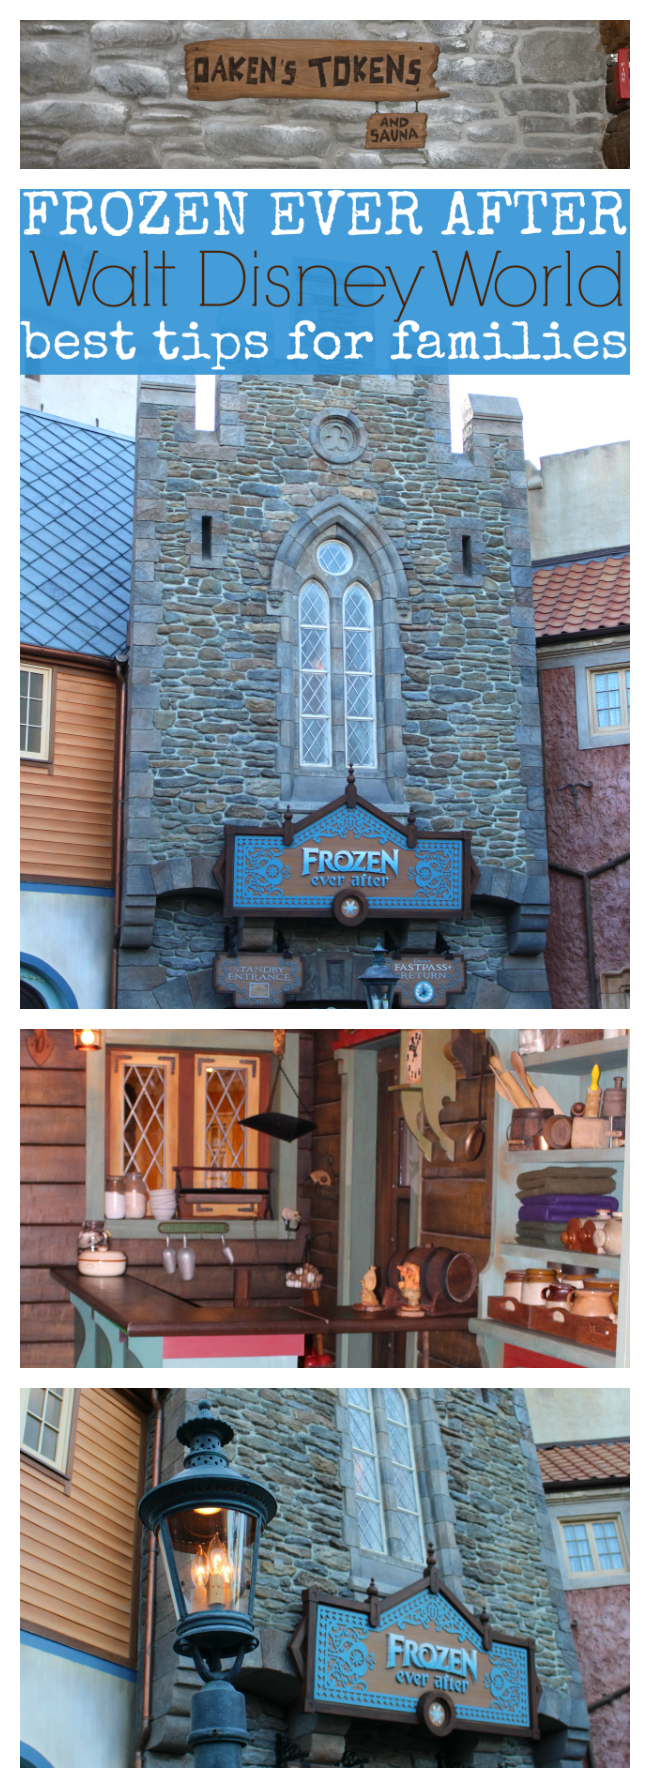 Frozen ever after tips pinterest